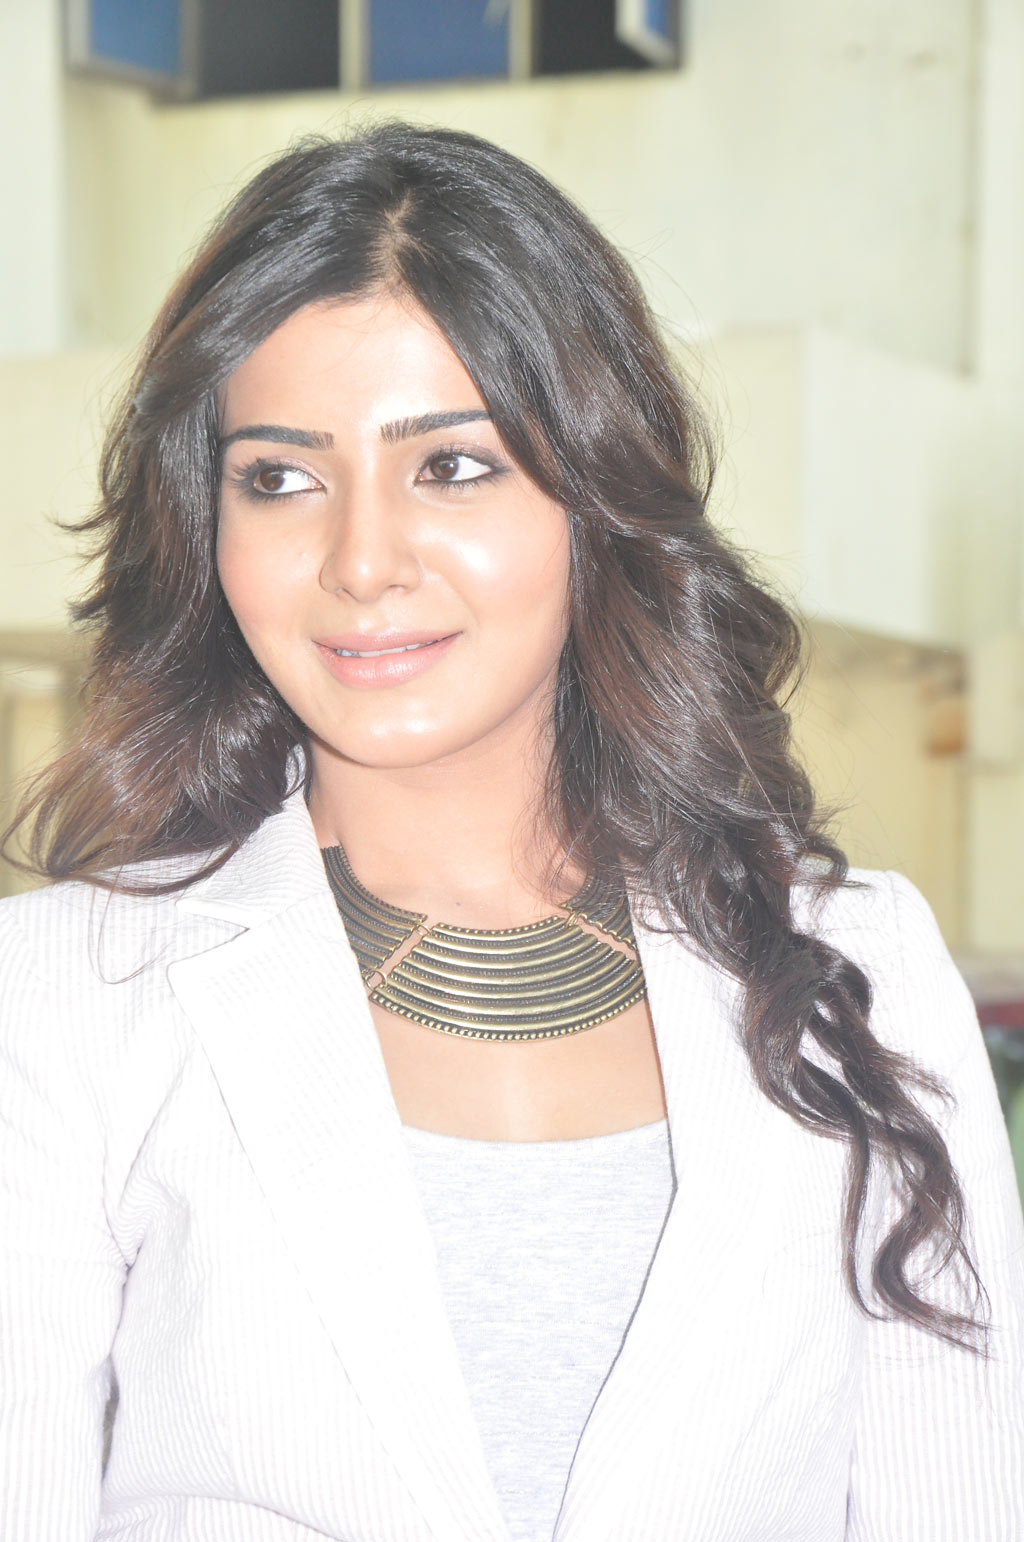 Kollywood Hot Actress Samantha Long Black Hair Stills In White Coat